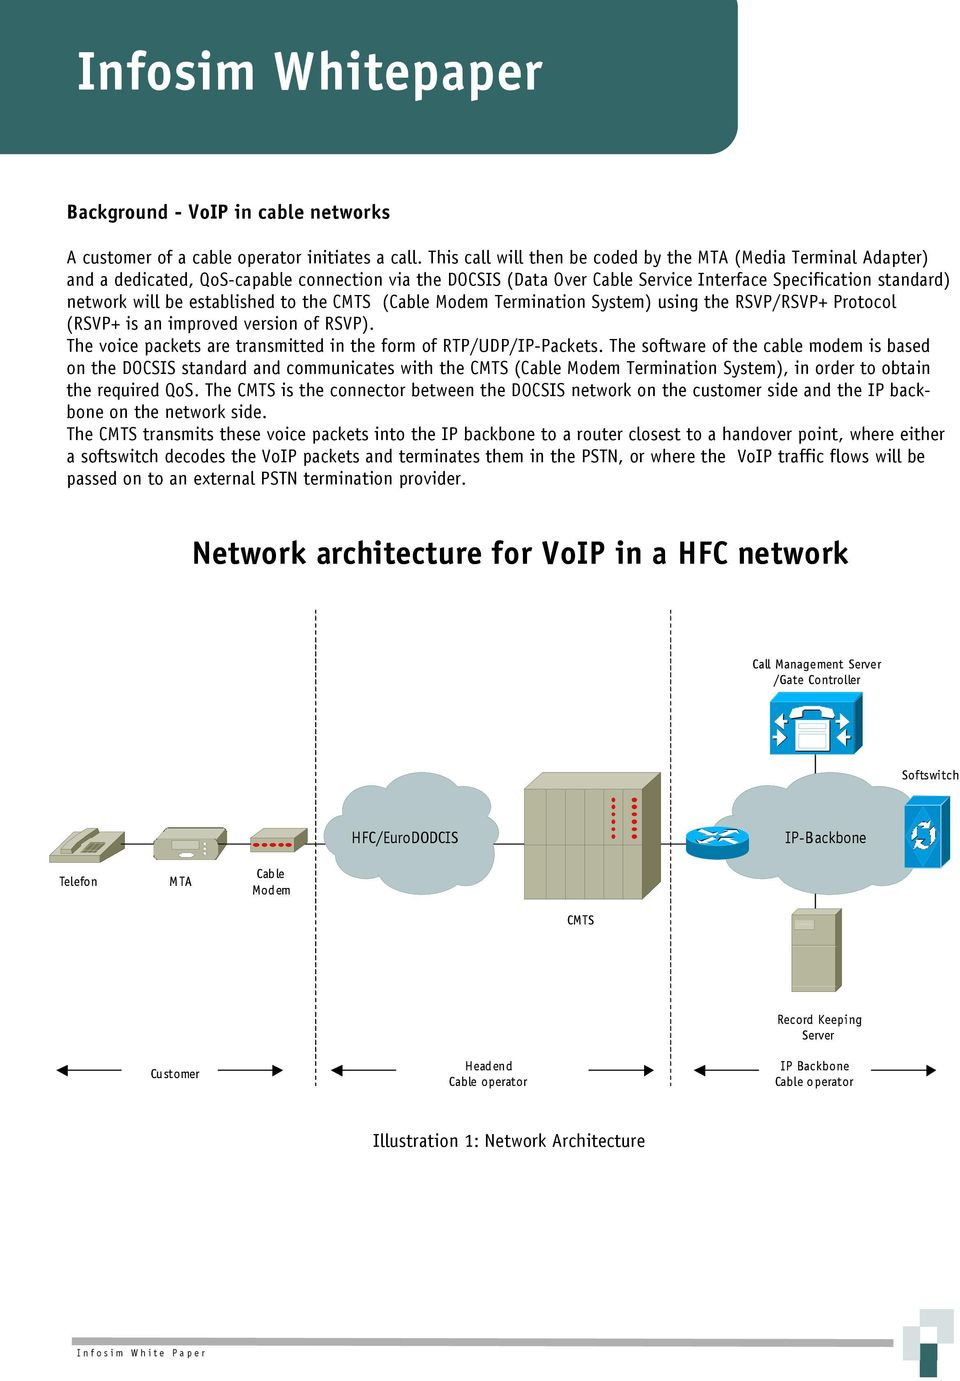 established to the CMTS (Cable Modem Termination System) using the RSVP/RSVP+ Protocol (RSVP+ is an improved version of RSVP). The voice packets are transmitted in the form of RTP/UDP/IP-Packets.